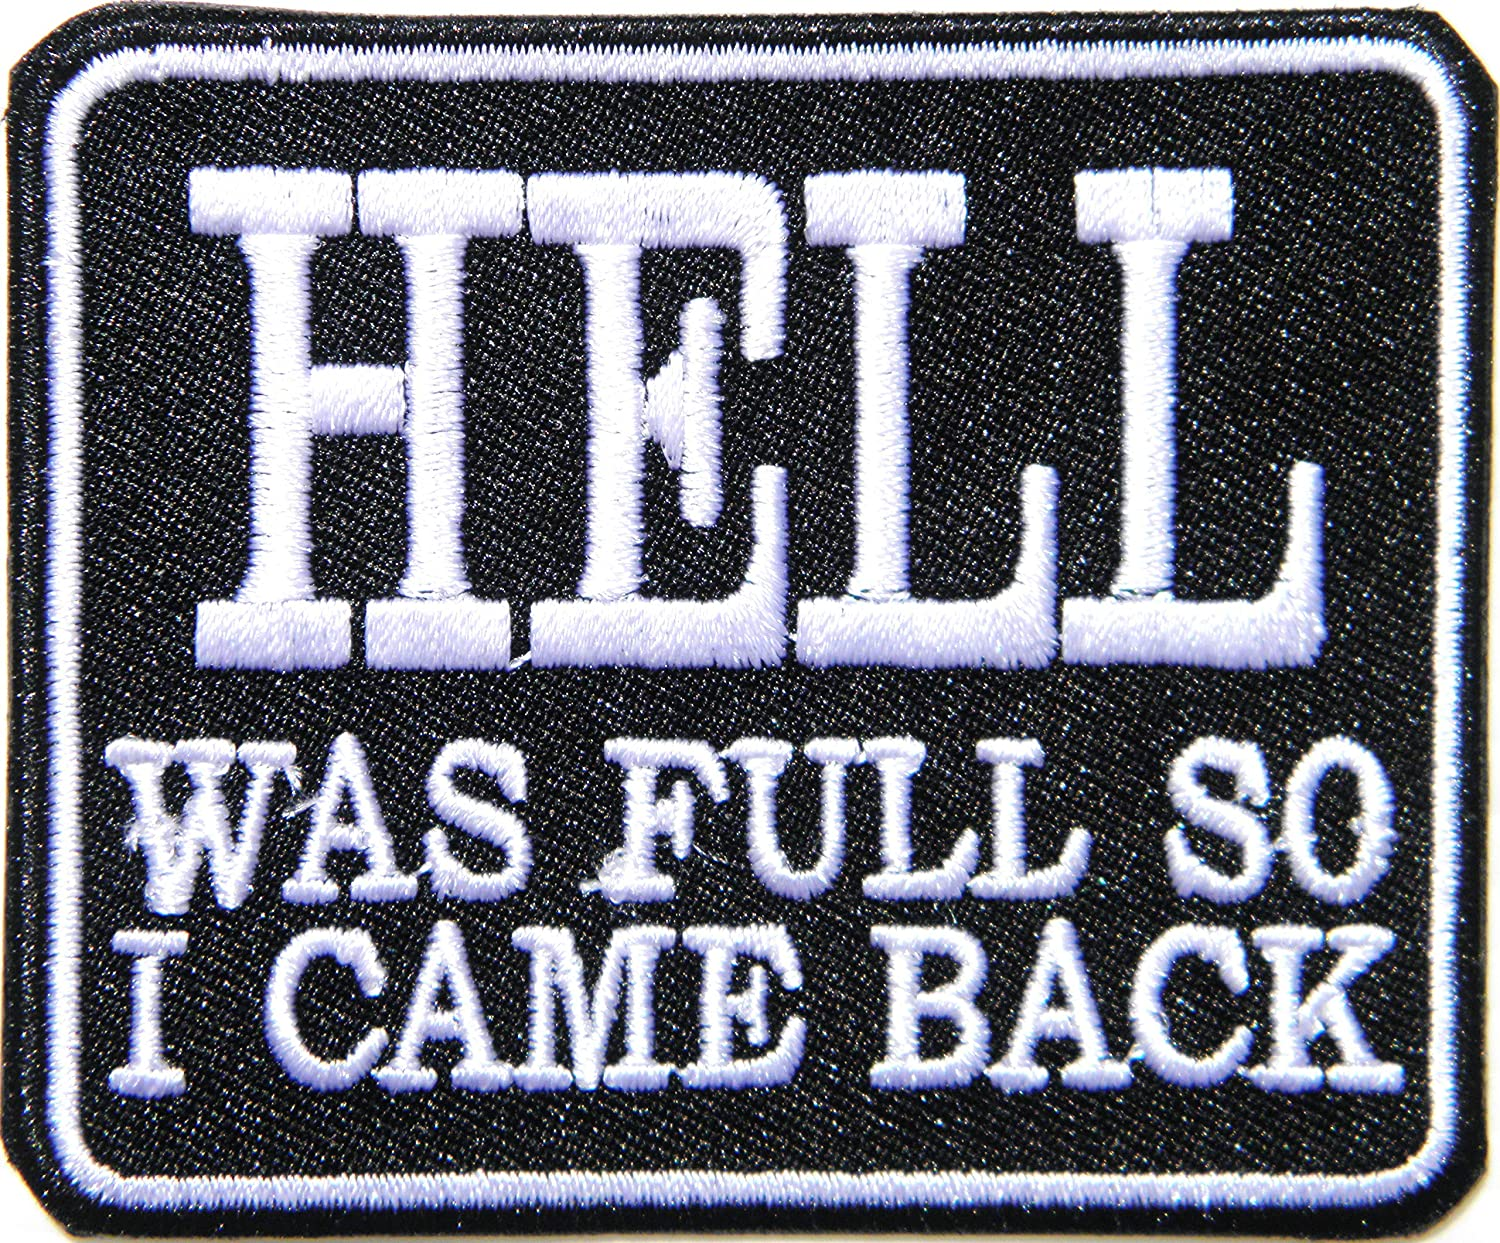 Hell was Full I Came Back Funny Rider Biker Chopper Motorcycles Punk Rock Heavy Metal Patch Sew Iron on Embroidered Jacket T Shirt Badge Costume